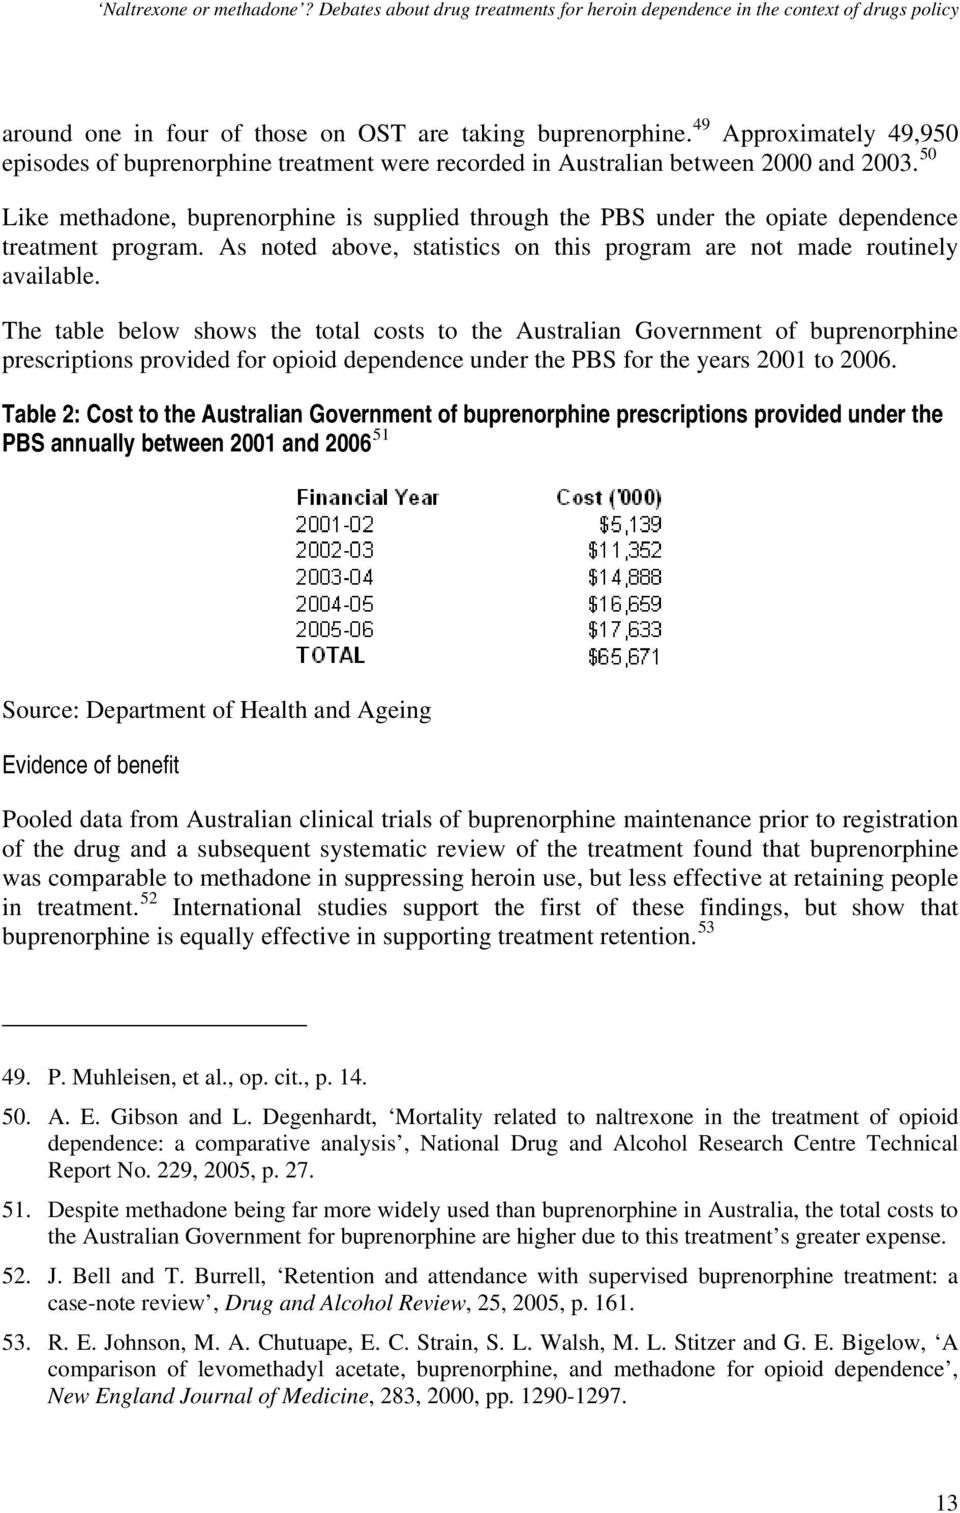 The table below shows the total costs to the Australian Government of buprenorphine prescriptions provided for opioid dependence under the PBS for the years 2001 to 2006.